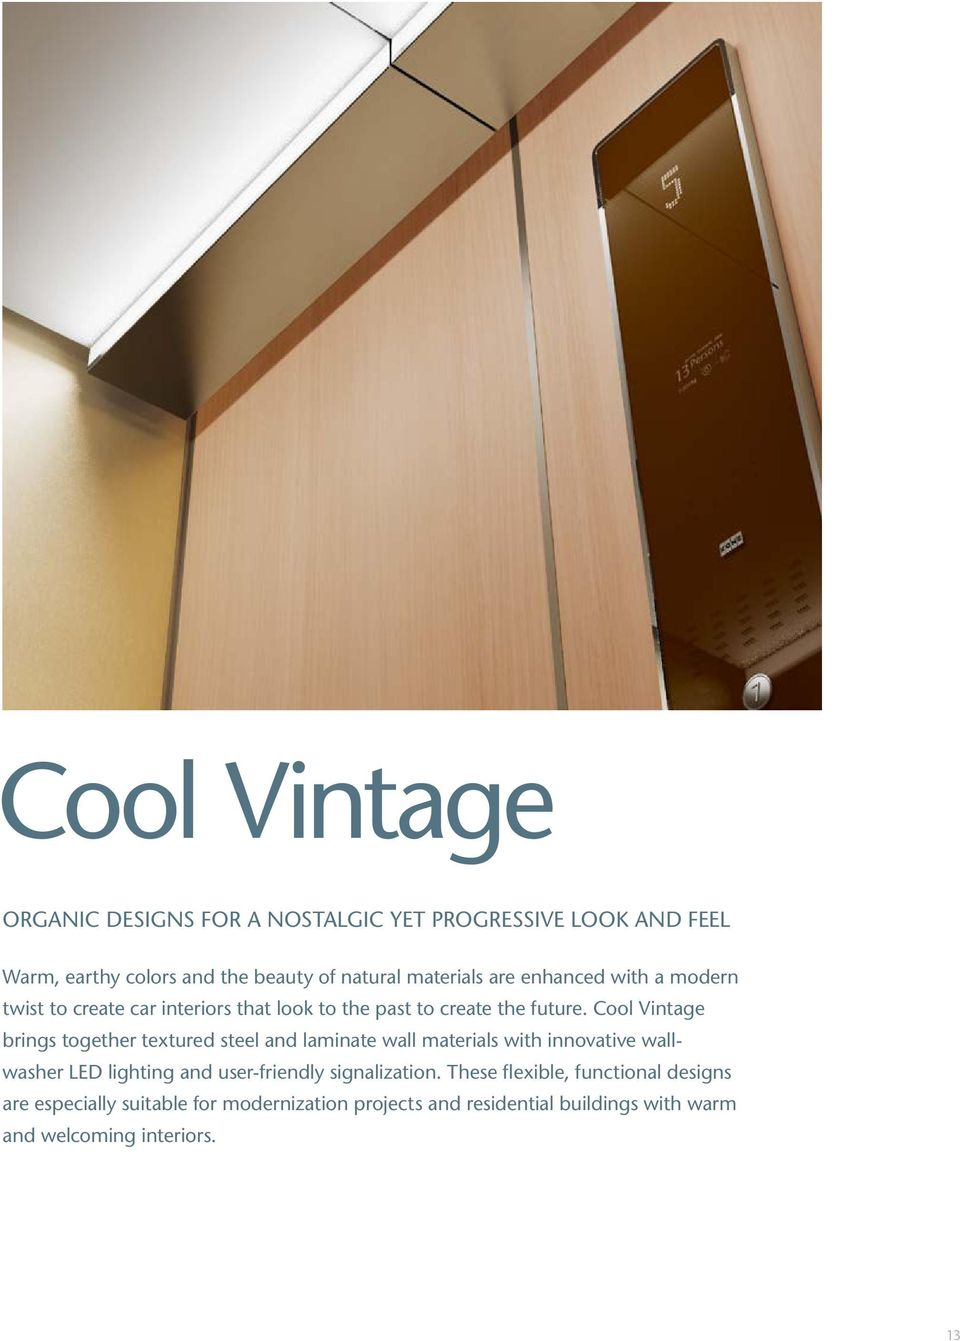 Cool Vintage brings together textured steel and laminate wall materials with innovative wallwasher LED lighting and user-friendly